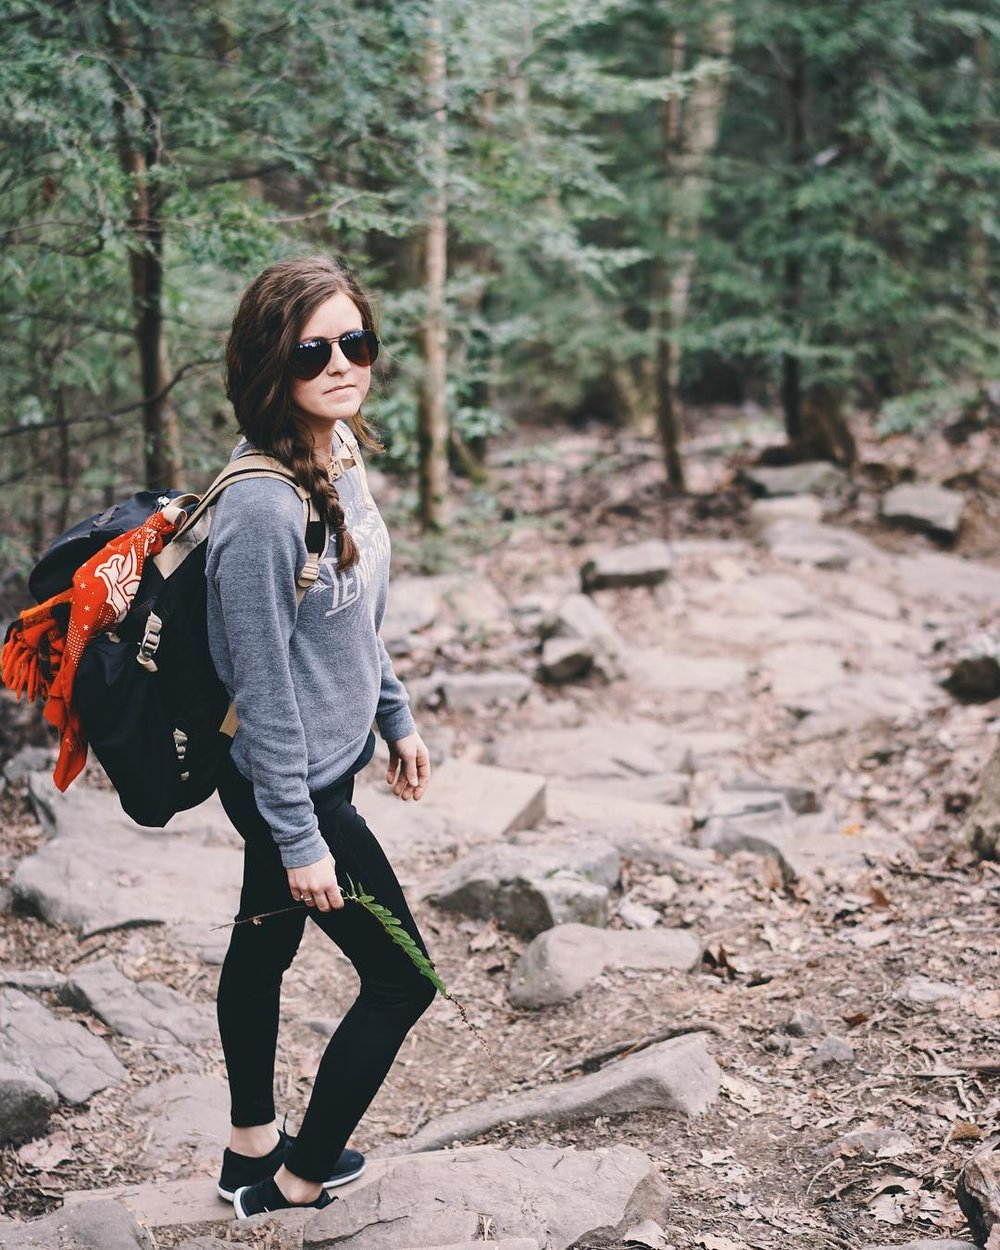 @tiff.ae takes her Keep Exploring bandana with her as she hikes in her favorite place -- the mountains